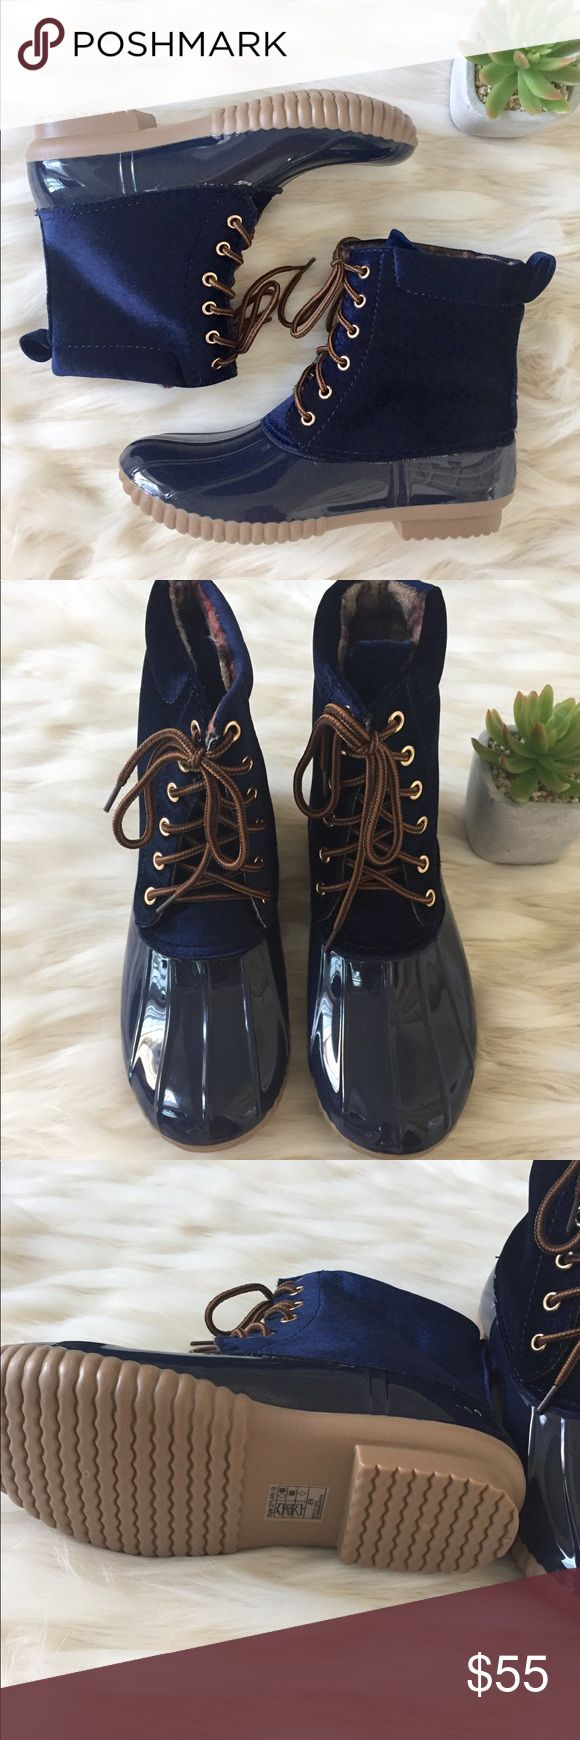 RESTOCKED! Navy duck boots A Fall favorite every year! Navy duck boots with a velvet upper. Stitched synthetic rubber sole for durability, matching stitching throughout, soft lining for comfort, heavy duty laces. Runs a little small so recommended to size up. Shoes Ankle Boots & Booties